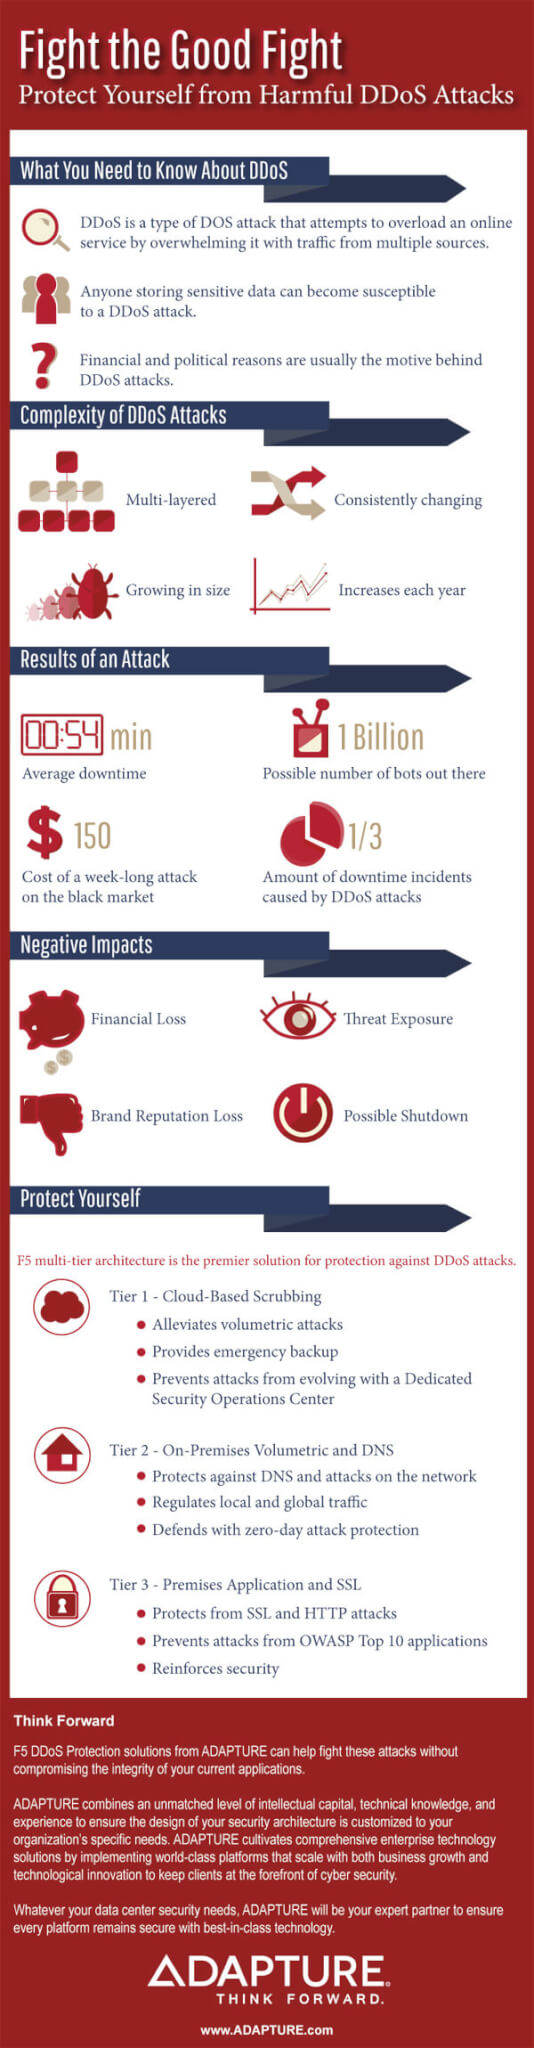 DDoS Infographic. Fight the good fight. Protect yourself from harmful DDoS Attacks. What you need to know about DDoS. DDoS is a type of DOS attack that attempts to overload an online service by overwhelming it with traffic from multiple sources. Anyone storing sensitive data can become susceptible to a DDoS attack. Financial and political reasons are usually the motive behind DDoS attacks. DDoS attacks are complex, multi-layered, consistently changing, are growing, and increase each year. The average downtime of a website during an attack is 54 minutes. There are 1 billion possible bots out there. The cost of a week-long attack on the black market is $150. 1/3 of downtime incidents are caused by DDoS attacks. The negative impacts of a DDoS attack are financial loss, brand reputation loss, threat exposure, and possible shutdown. F5 multi-tier architecture is the premier solution for protection against DDoS attacks. Tier 1 is cloud based scrubbing which alleviates volumetric attacks, provides emergency backup, and prevents attacks from evolving with a dedicated security operations center. Tier 2 is on-premises volumetric and DNS, which protects against DNS and attacks on the network, regulates local and global traffic, and defends zero-day attack protection. Tier 3 is premises application and SSL, which protects from SSL and HTTP attacks, prevents attacks from OWASP Top 10 applications, and reinforces security. Think forward. ADAPTURE's F5 DDoS Protection solution can help fight these attacks without compromising the integrity of your current applications. ADAPTURE combines an unmatched level of intellectual capital, technical knowledge and experience to ensure the design of your security architecture is customized to your organization's specific needs. ADAPTURE cultivates comprehensive enterprise technology solutions by implementing world-class platforms that scale with both business growth and technological innovation to keep clients at the forefront of cybersecurit